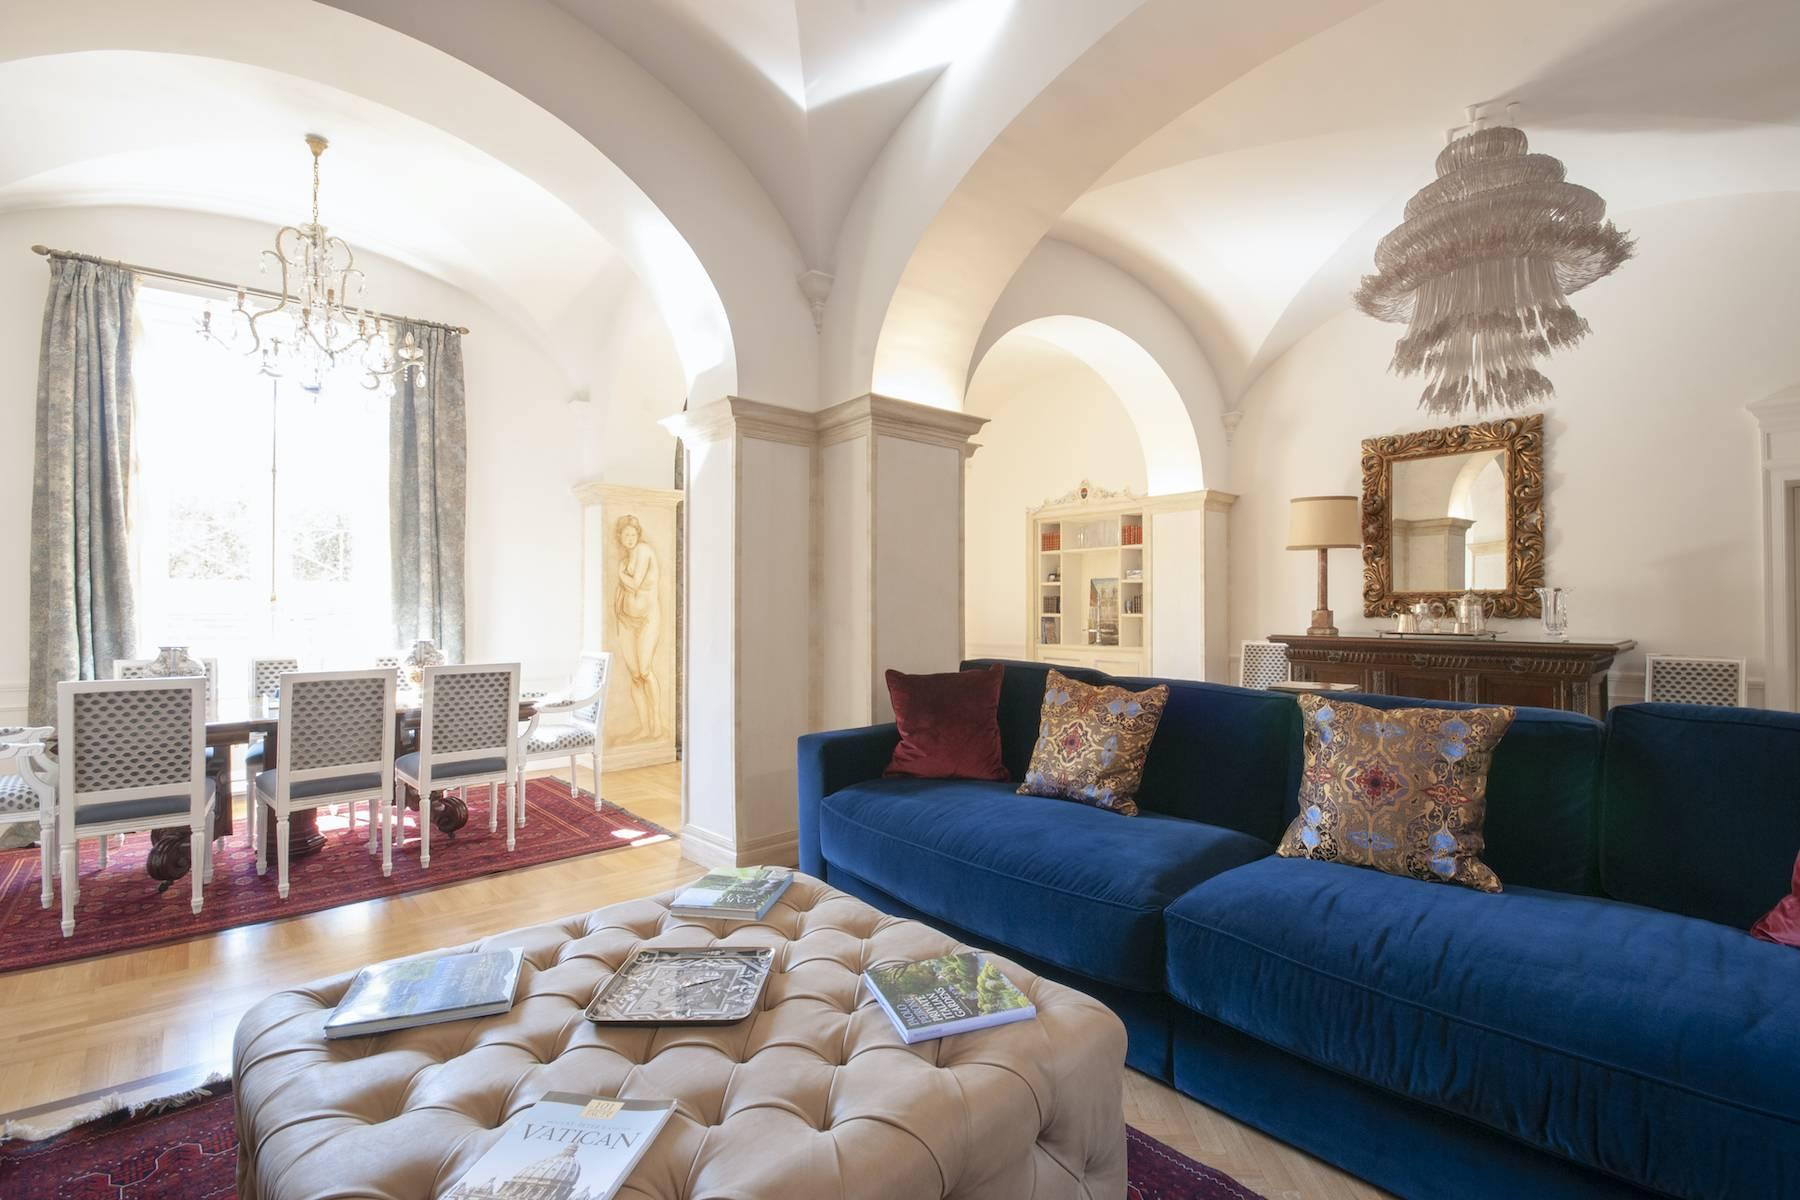 Wonderful residence overlooking Trinità dei Monti - 2